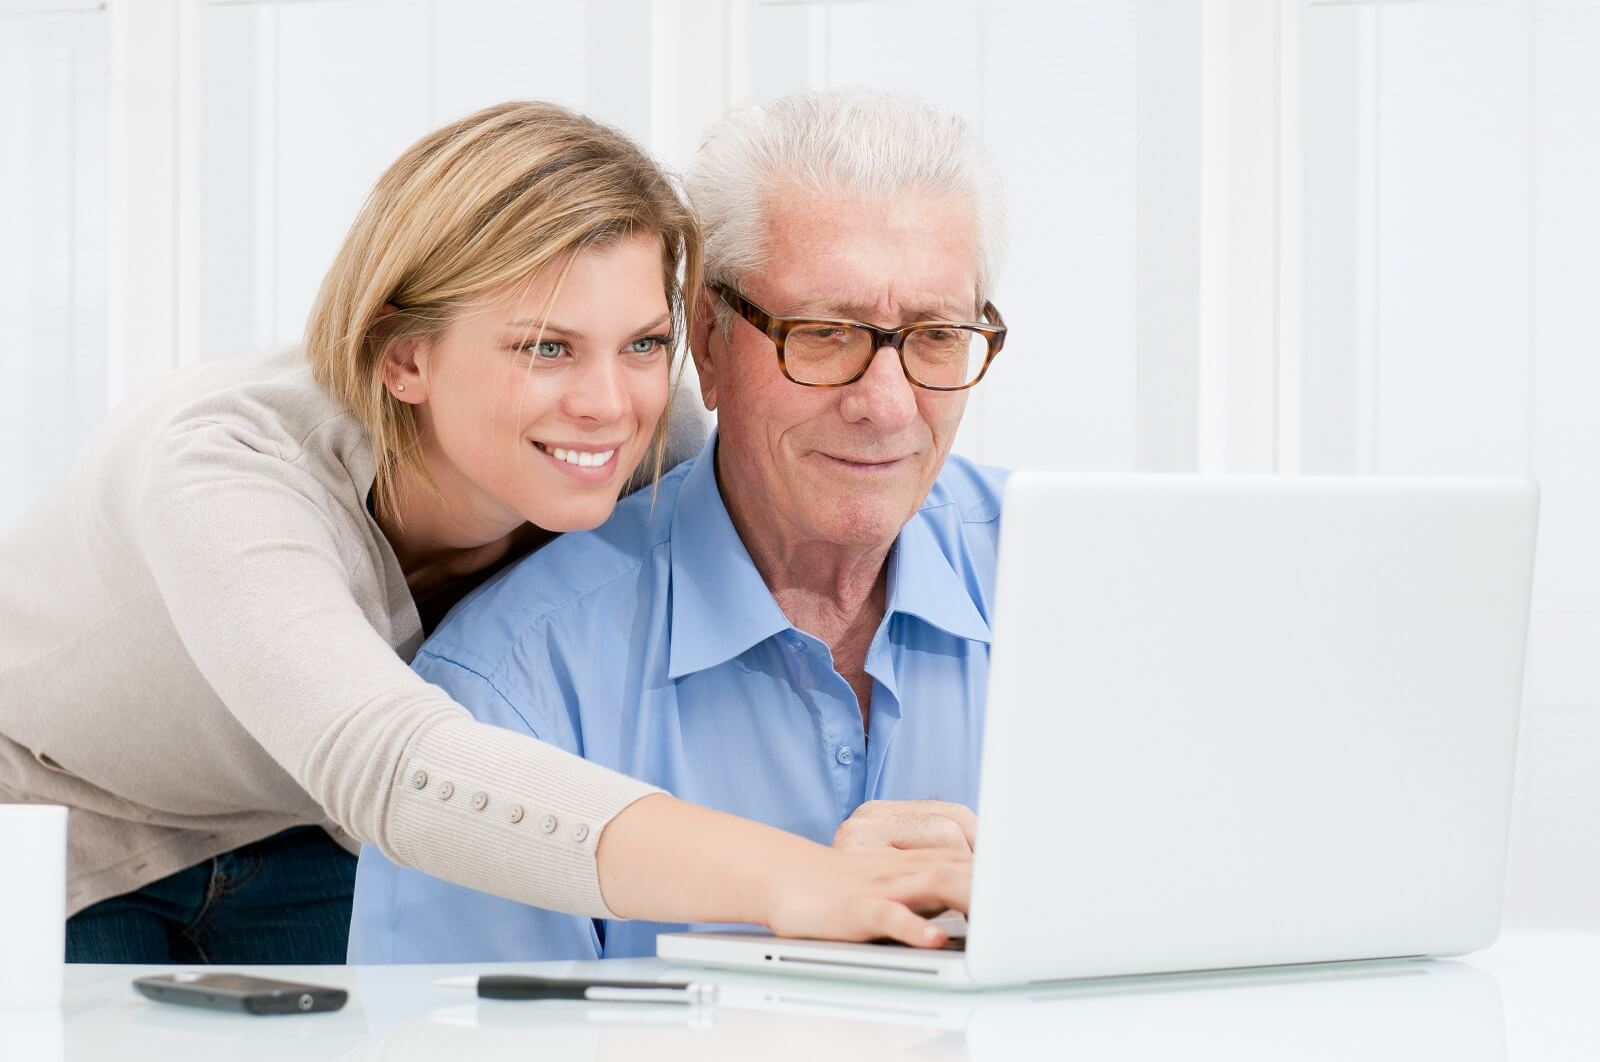 Tips to Increase the Lifespan of Your Computer